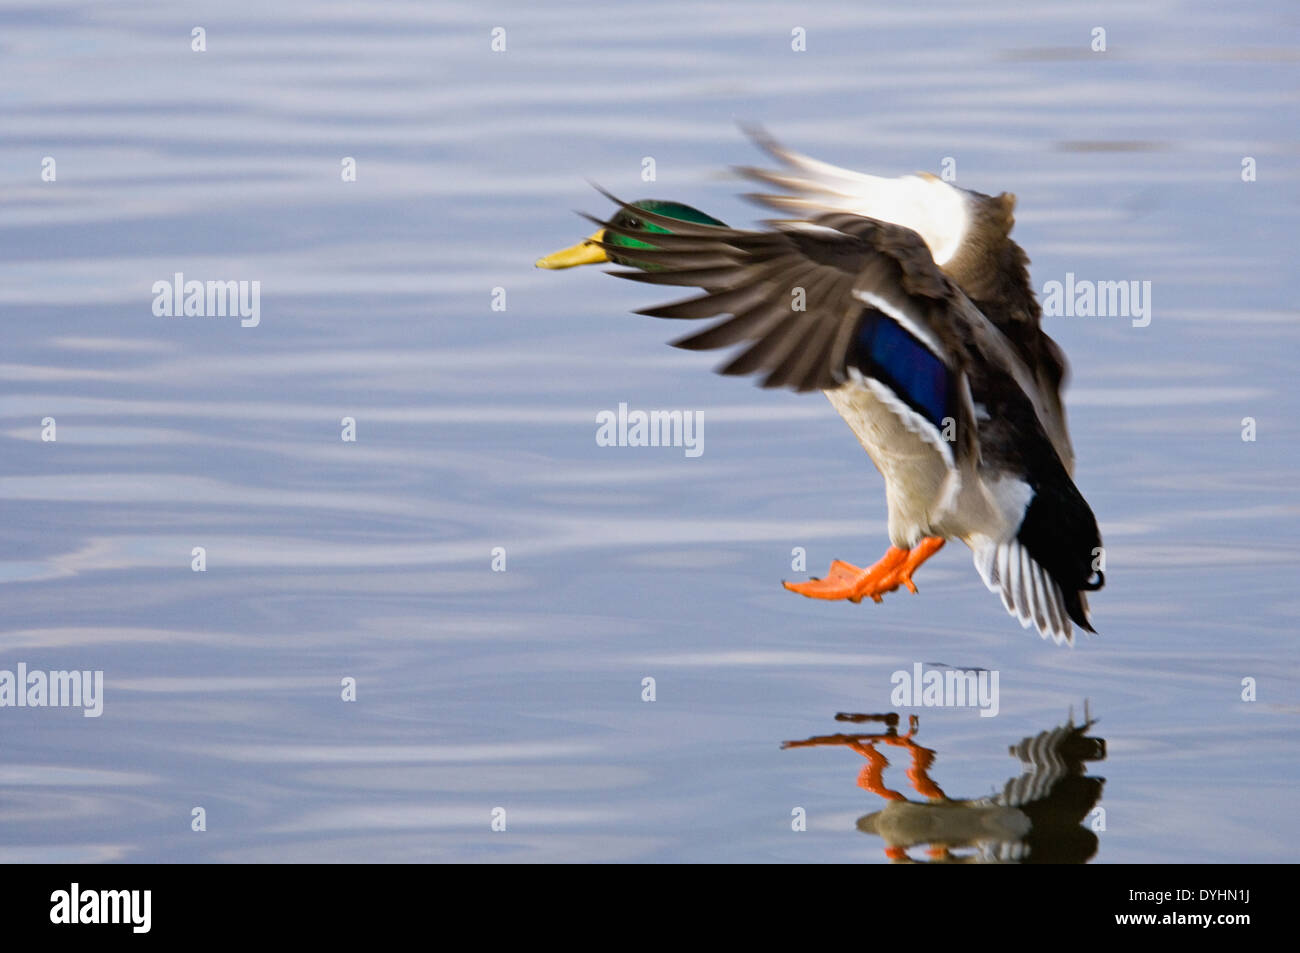 Male Mallard Duck Landing on Water after Flight in Southern Indiana - Stock Image